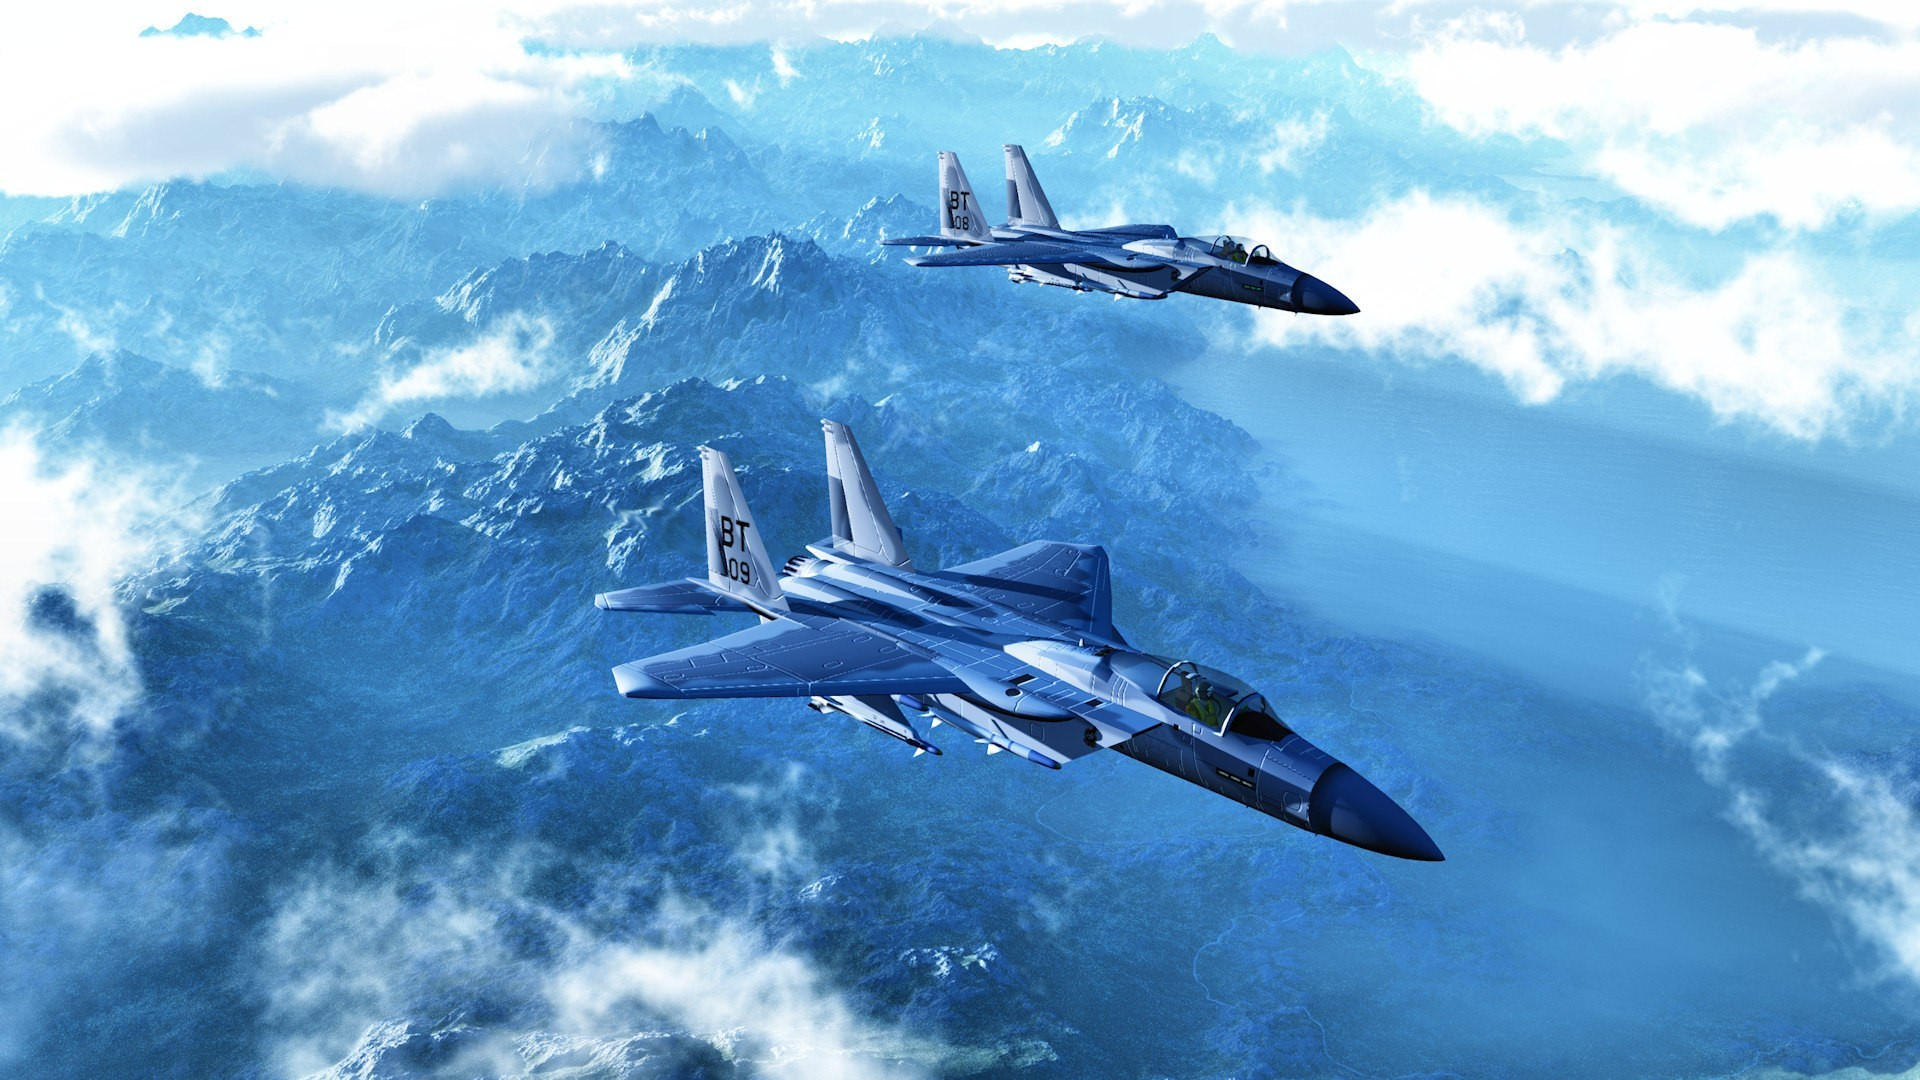 Aircraft f-15 eagle skyscapes HD Wallpaper